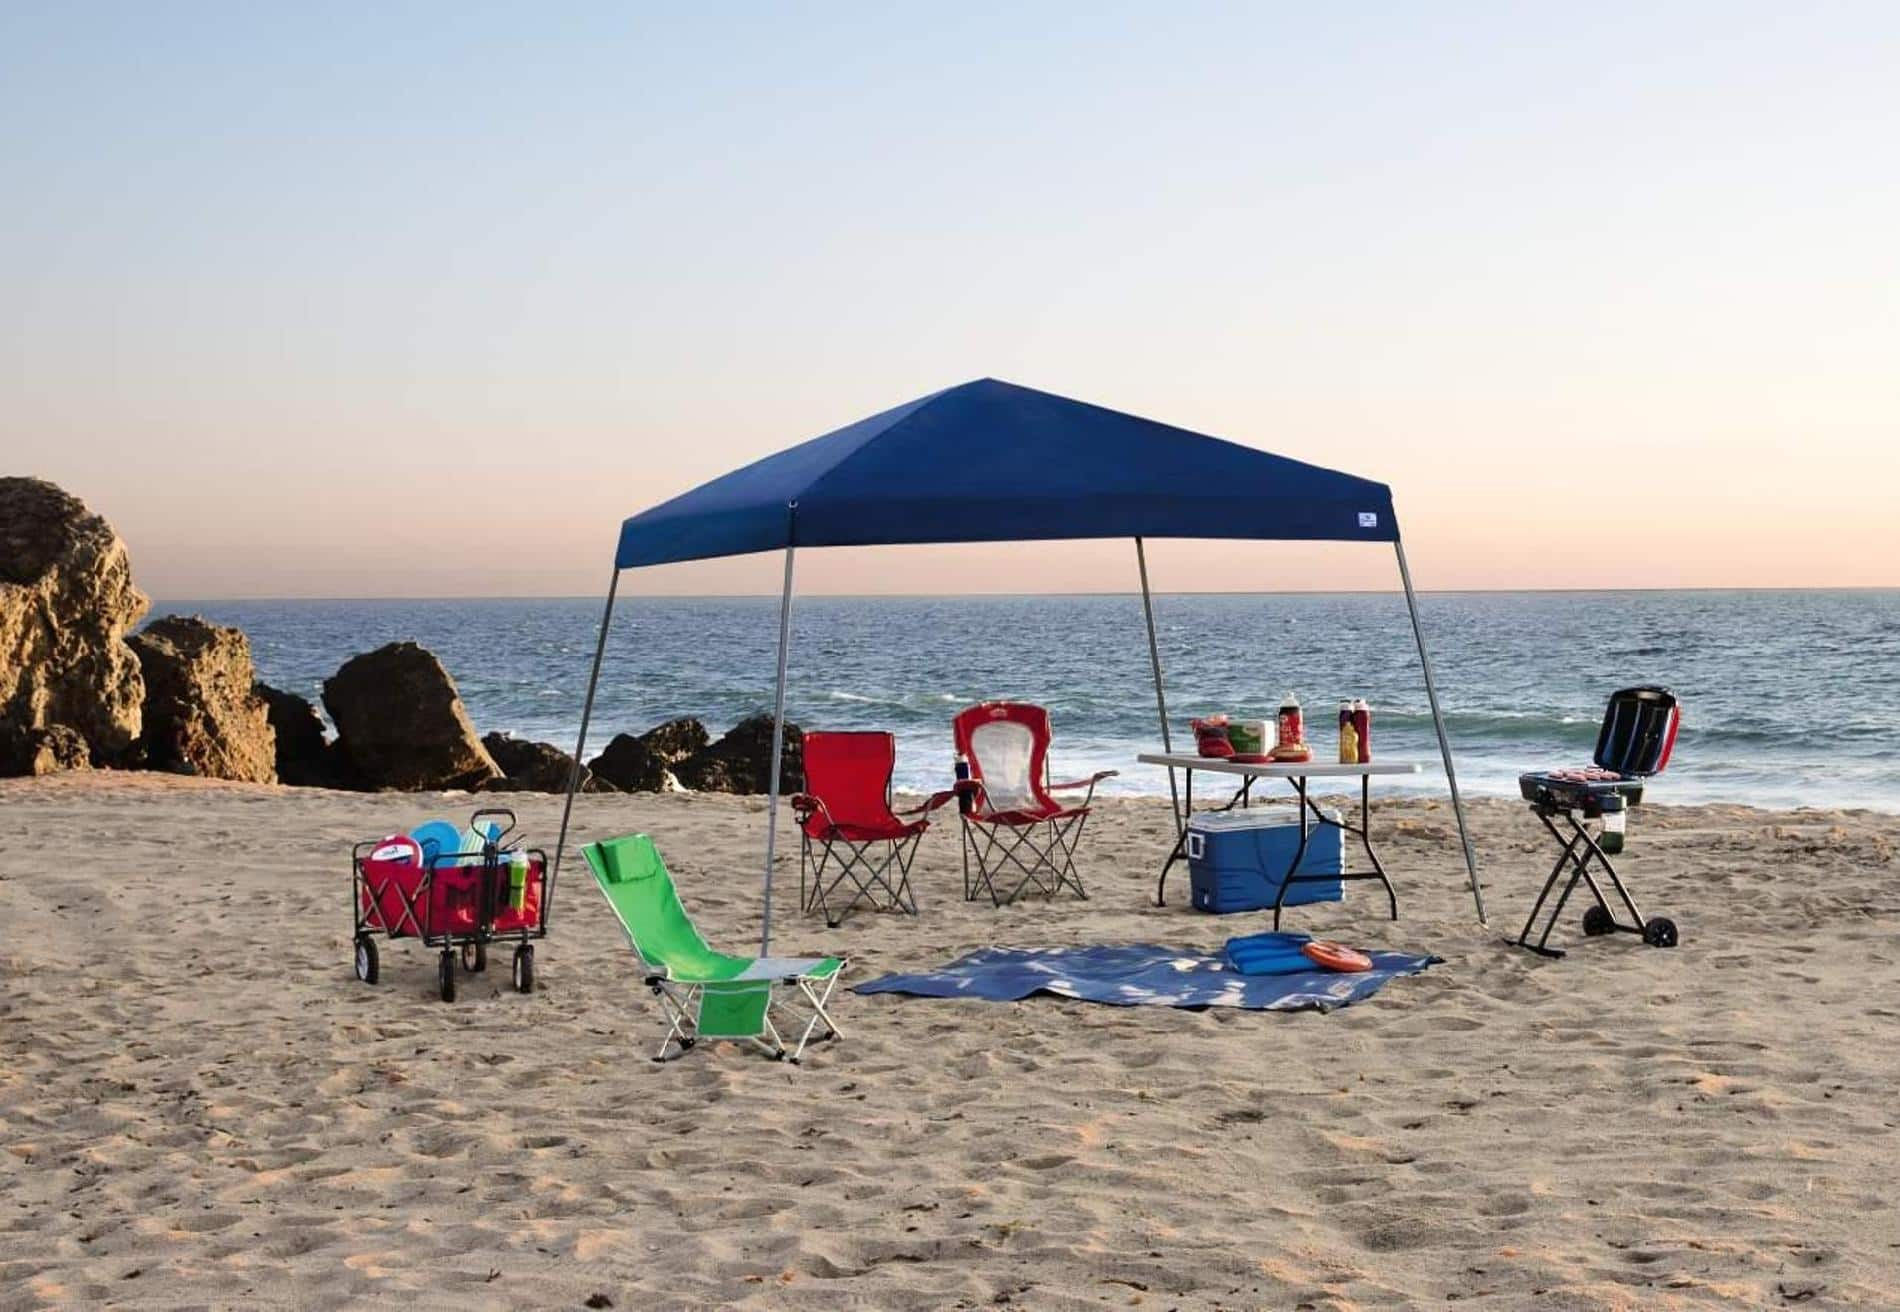 Sportcraft Instant Canopy $59.99 + Free Shipping